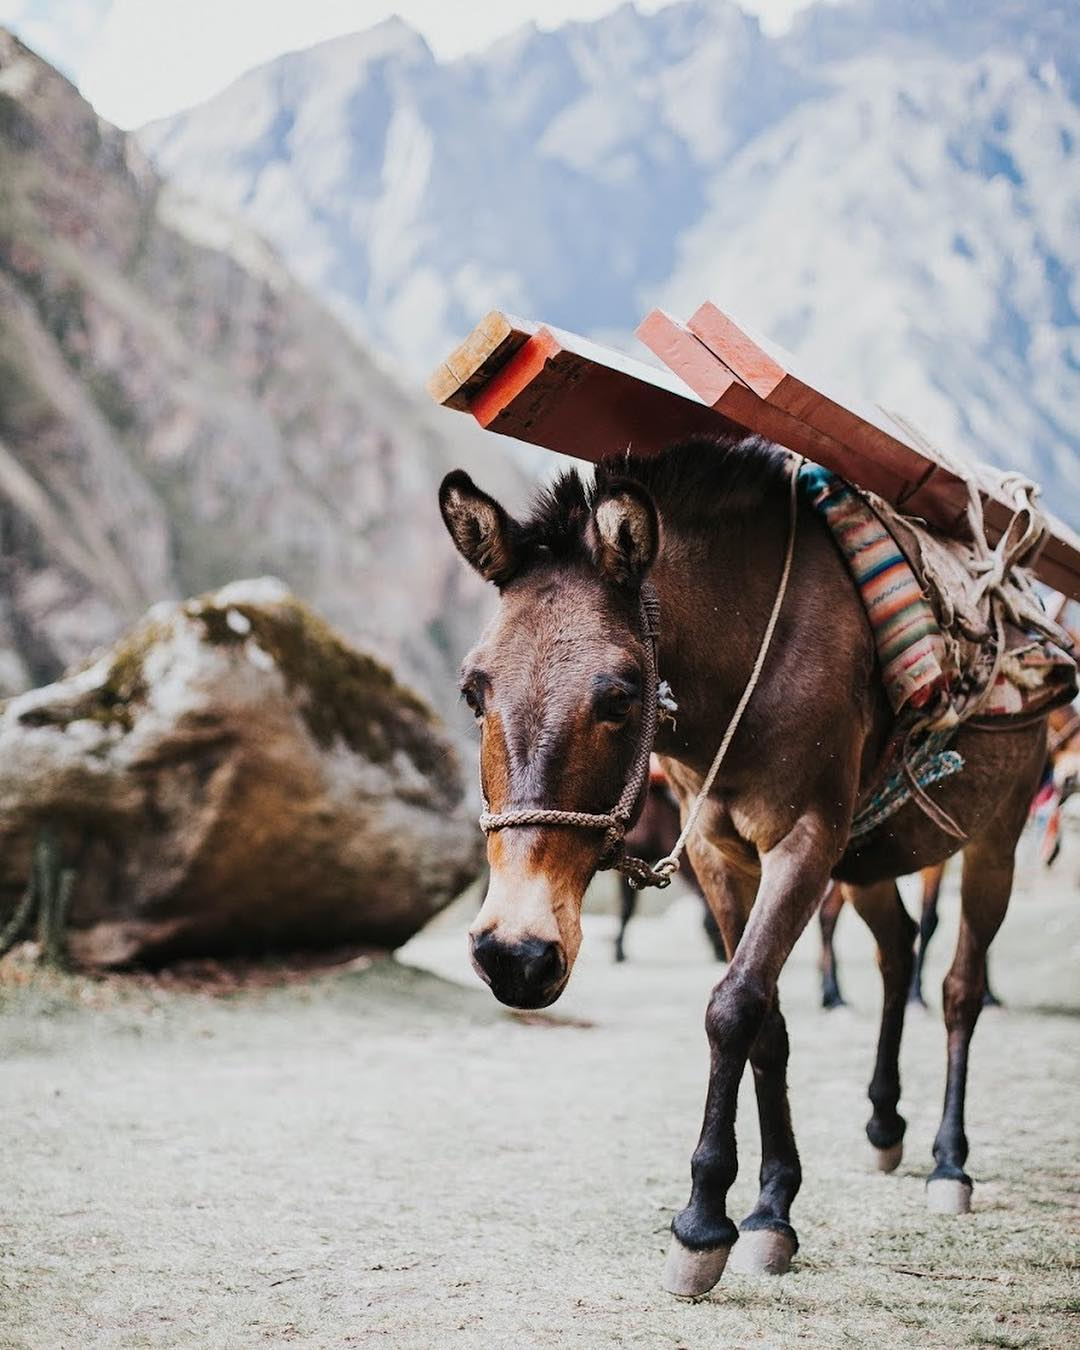 A brown donkey carrying 4 red wooden beams on its back.